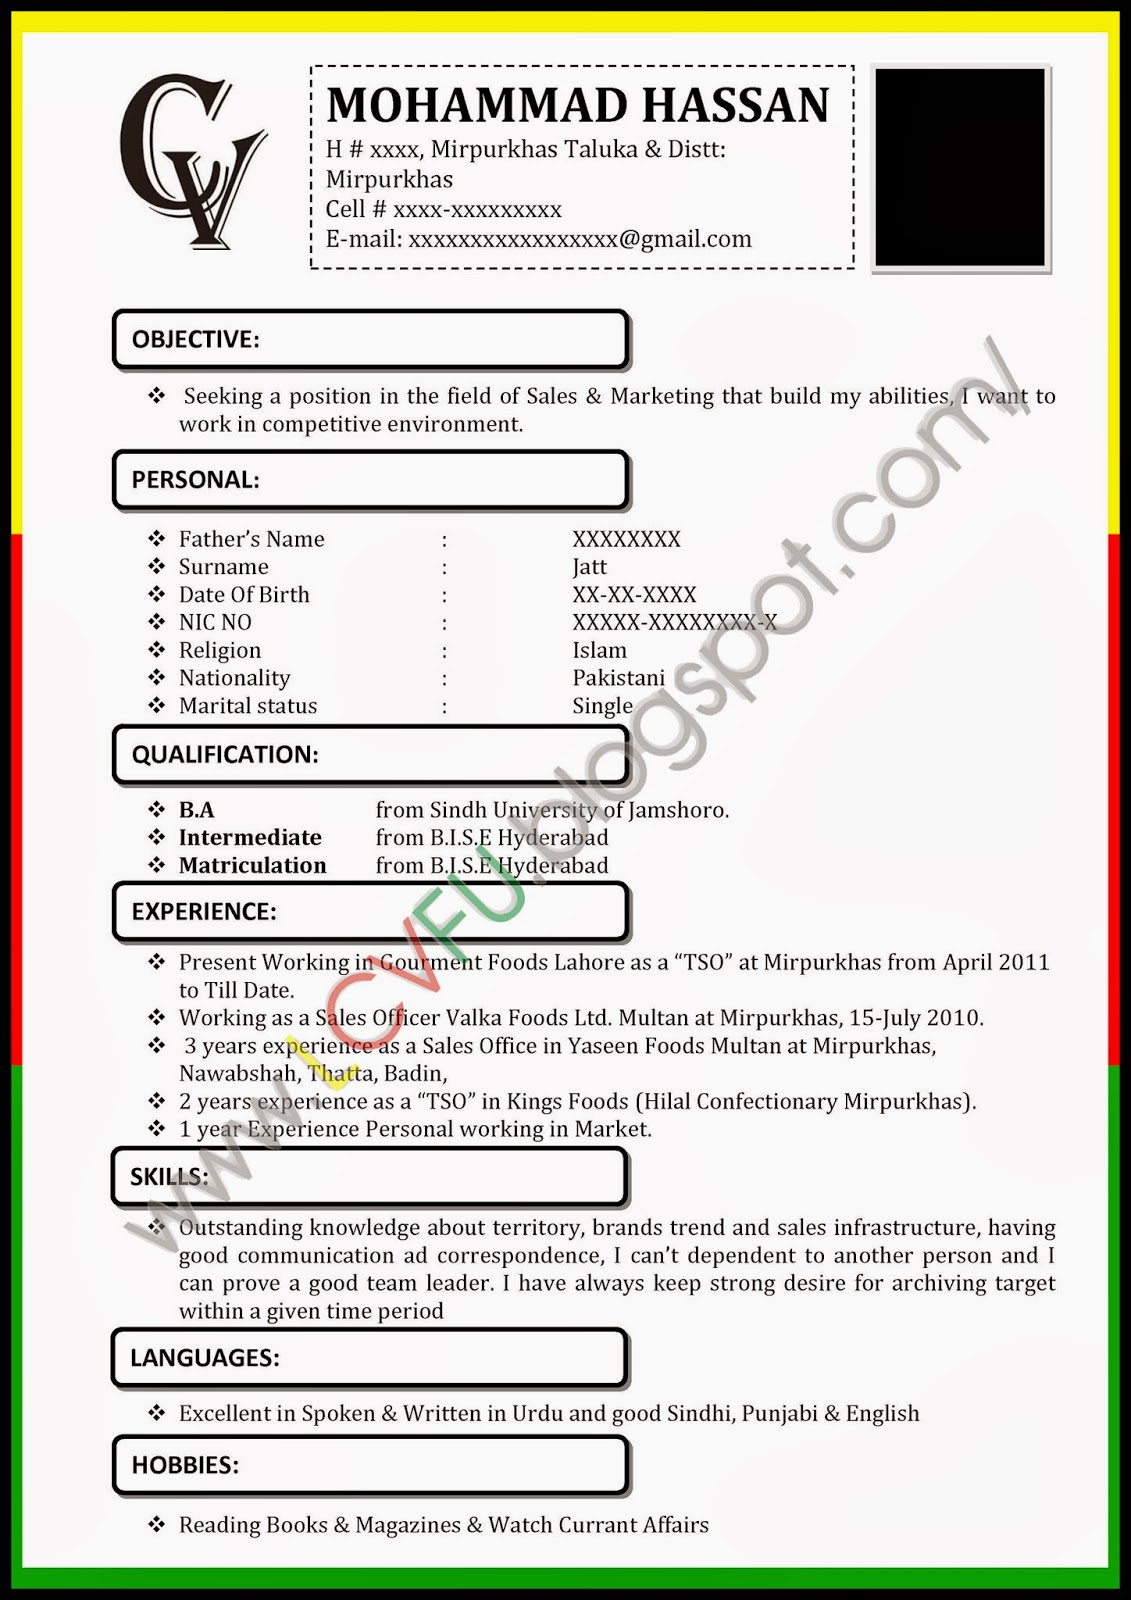 Current Resume Format 2016 New Format Of Curriculum Vitae Search Results Calendar